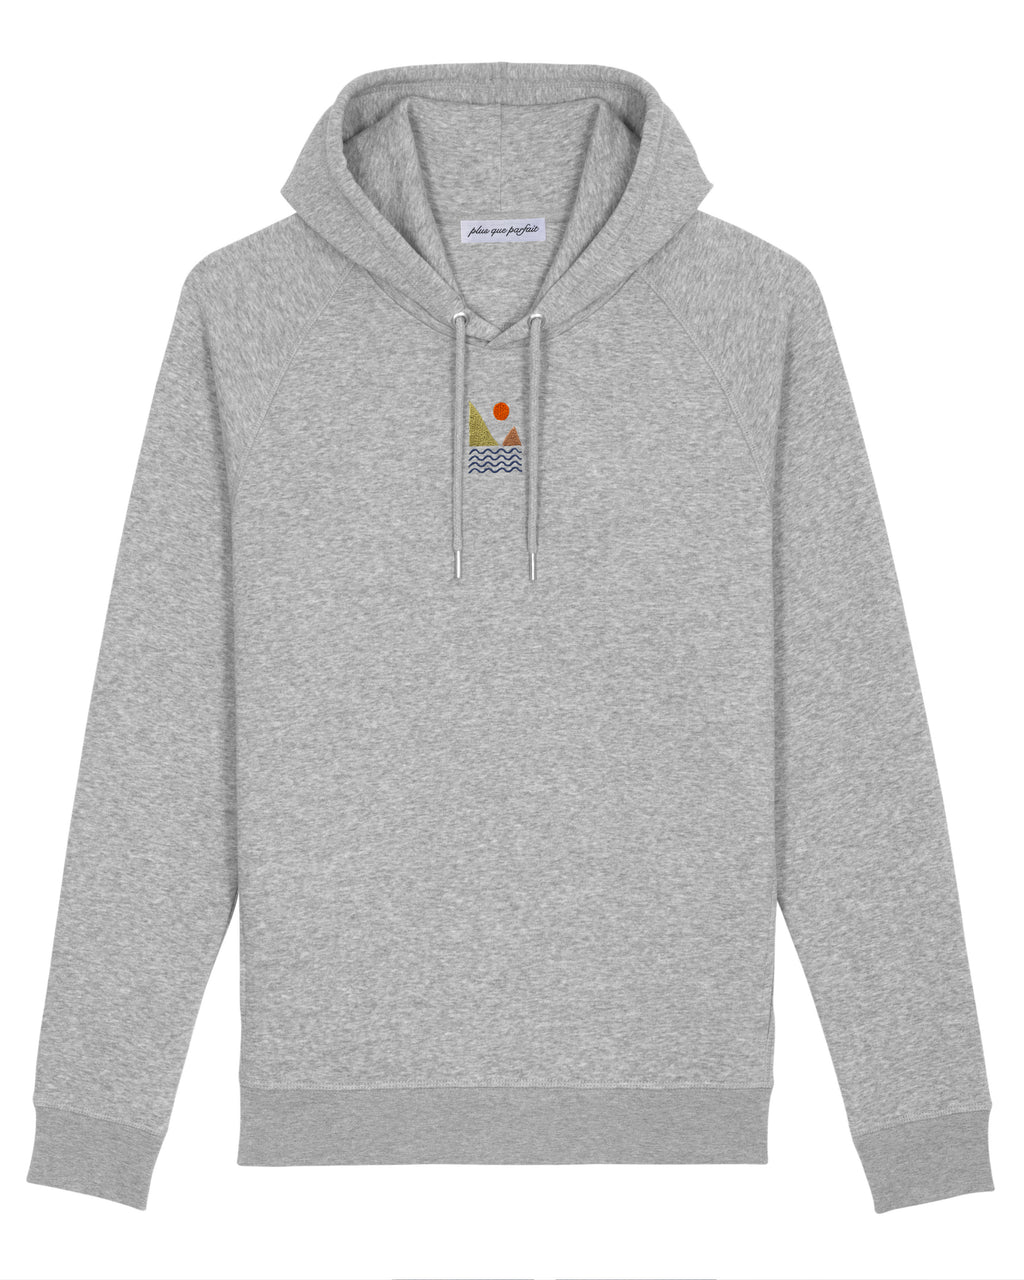 INTO THE WILD HOODIE - GREY